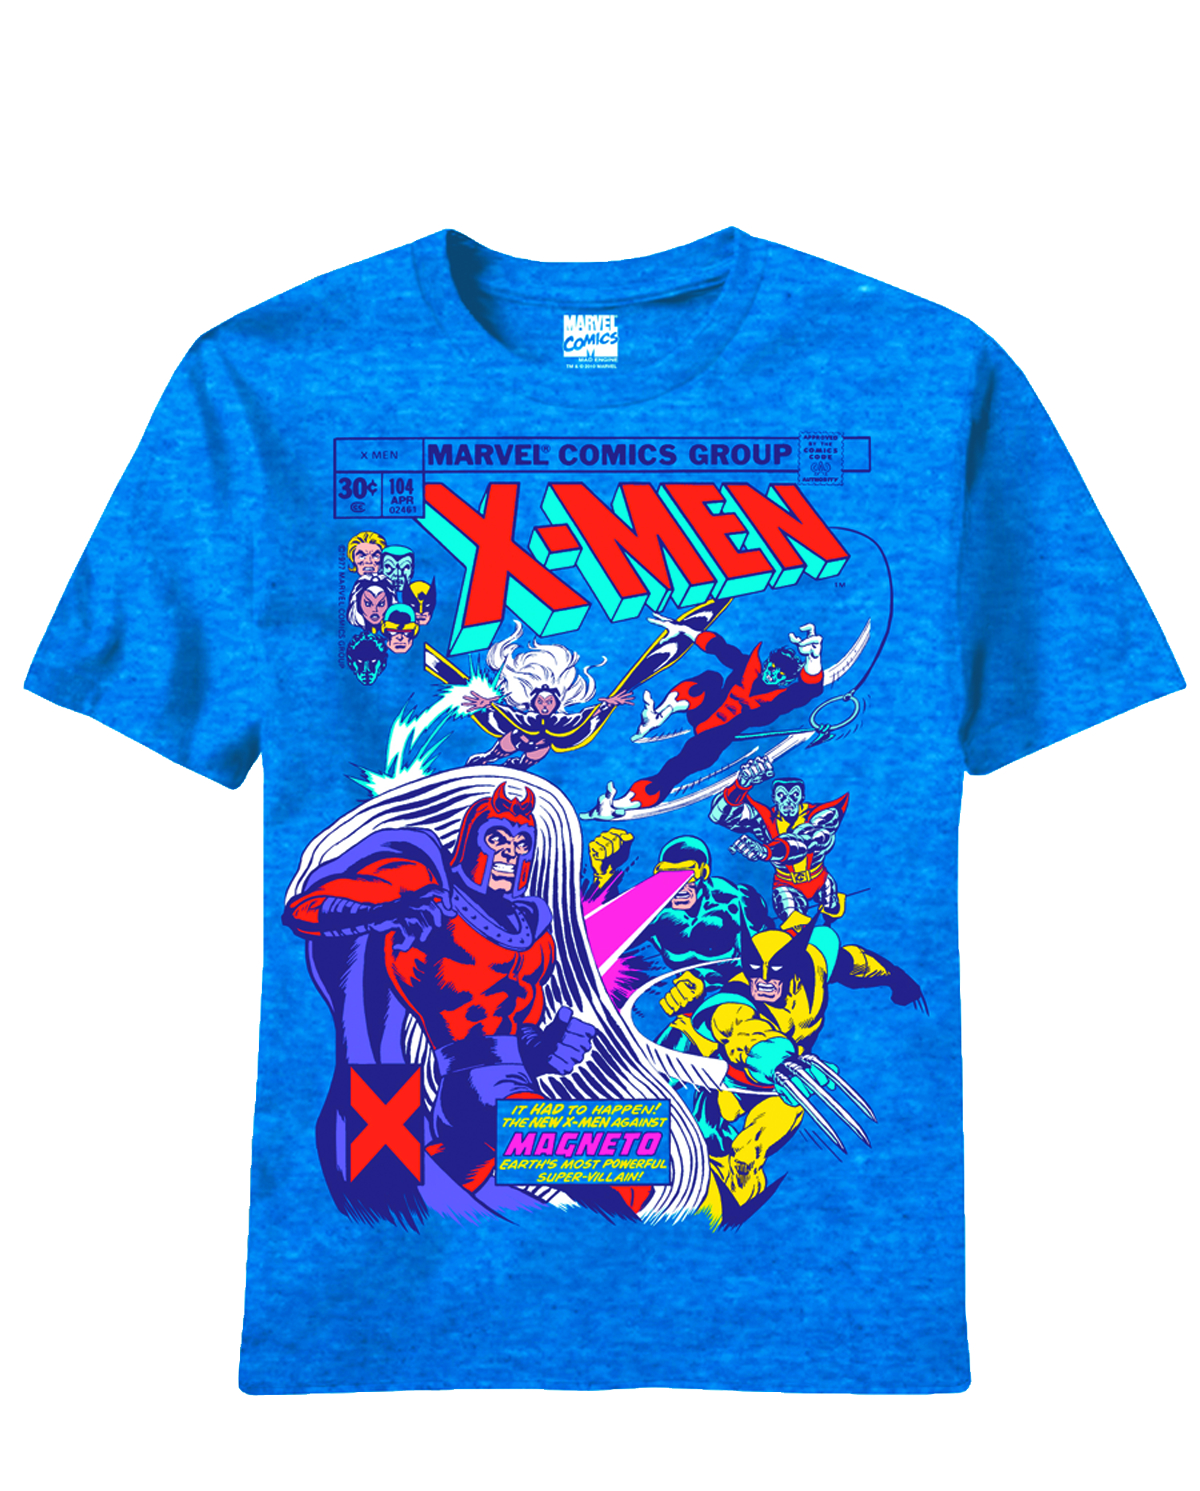 X-MEN MAGNA SHIELD PX BLUE HEATHER T/S XL